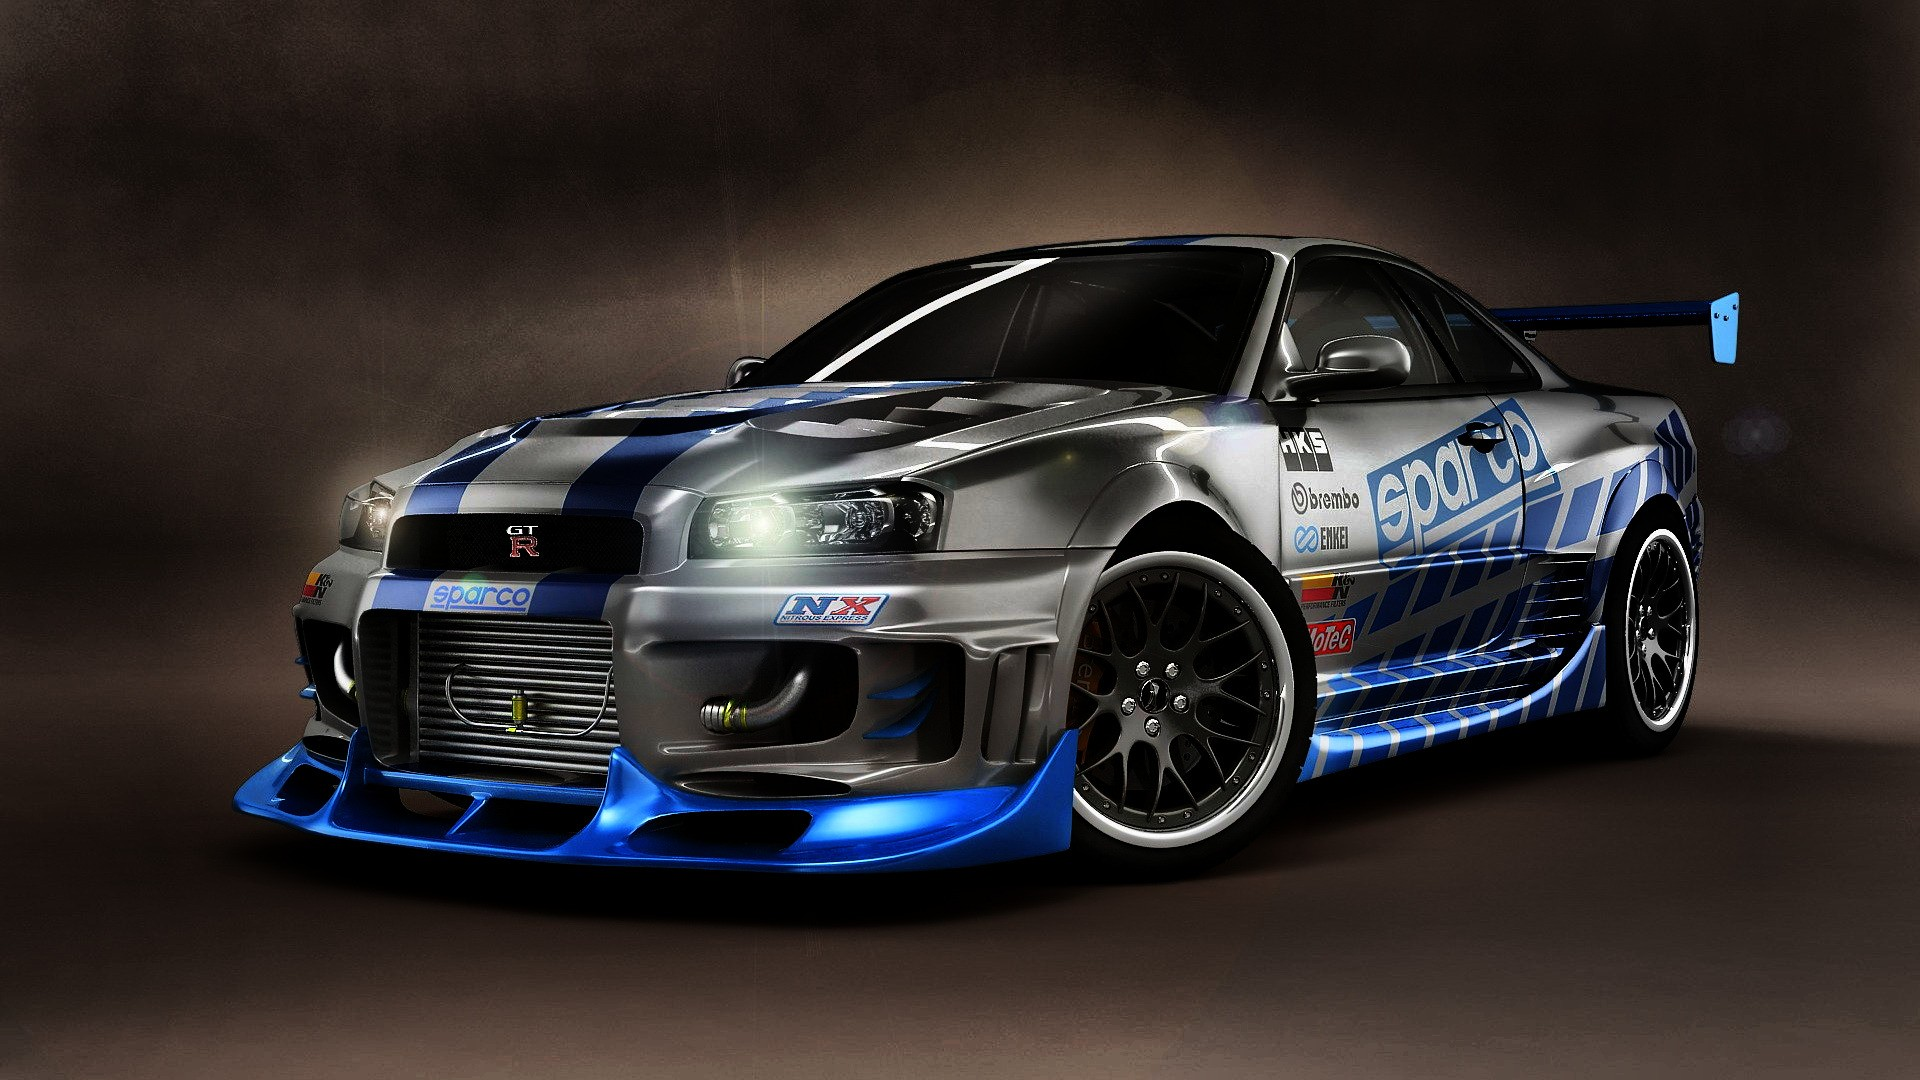 Car Wallpaper Gtr R34 Nissan Skyline Tuning 1920x1080